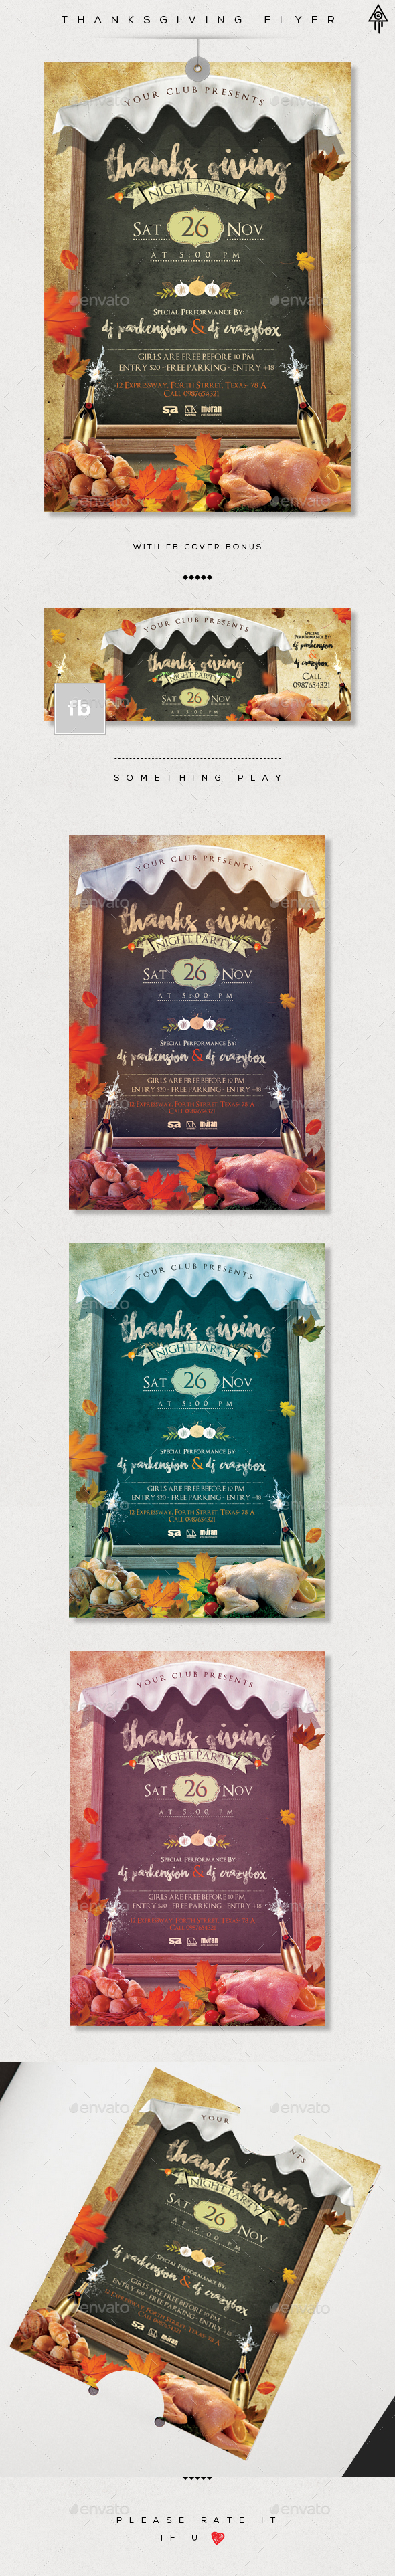 Thanksgiving Party Flyer and Facebook Cover - Holidays Events